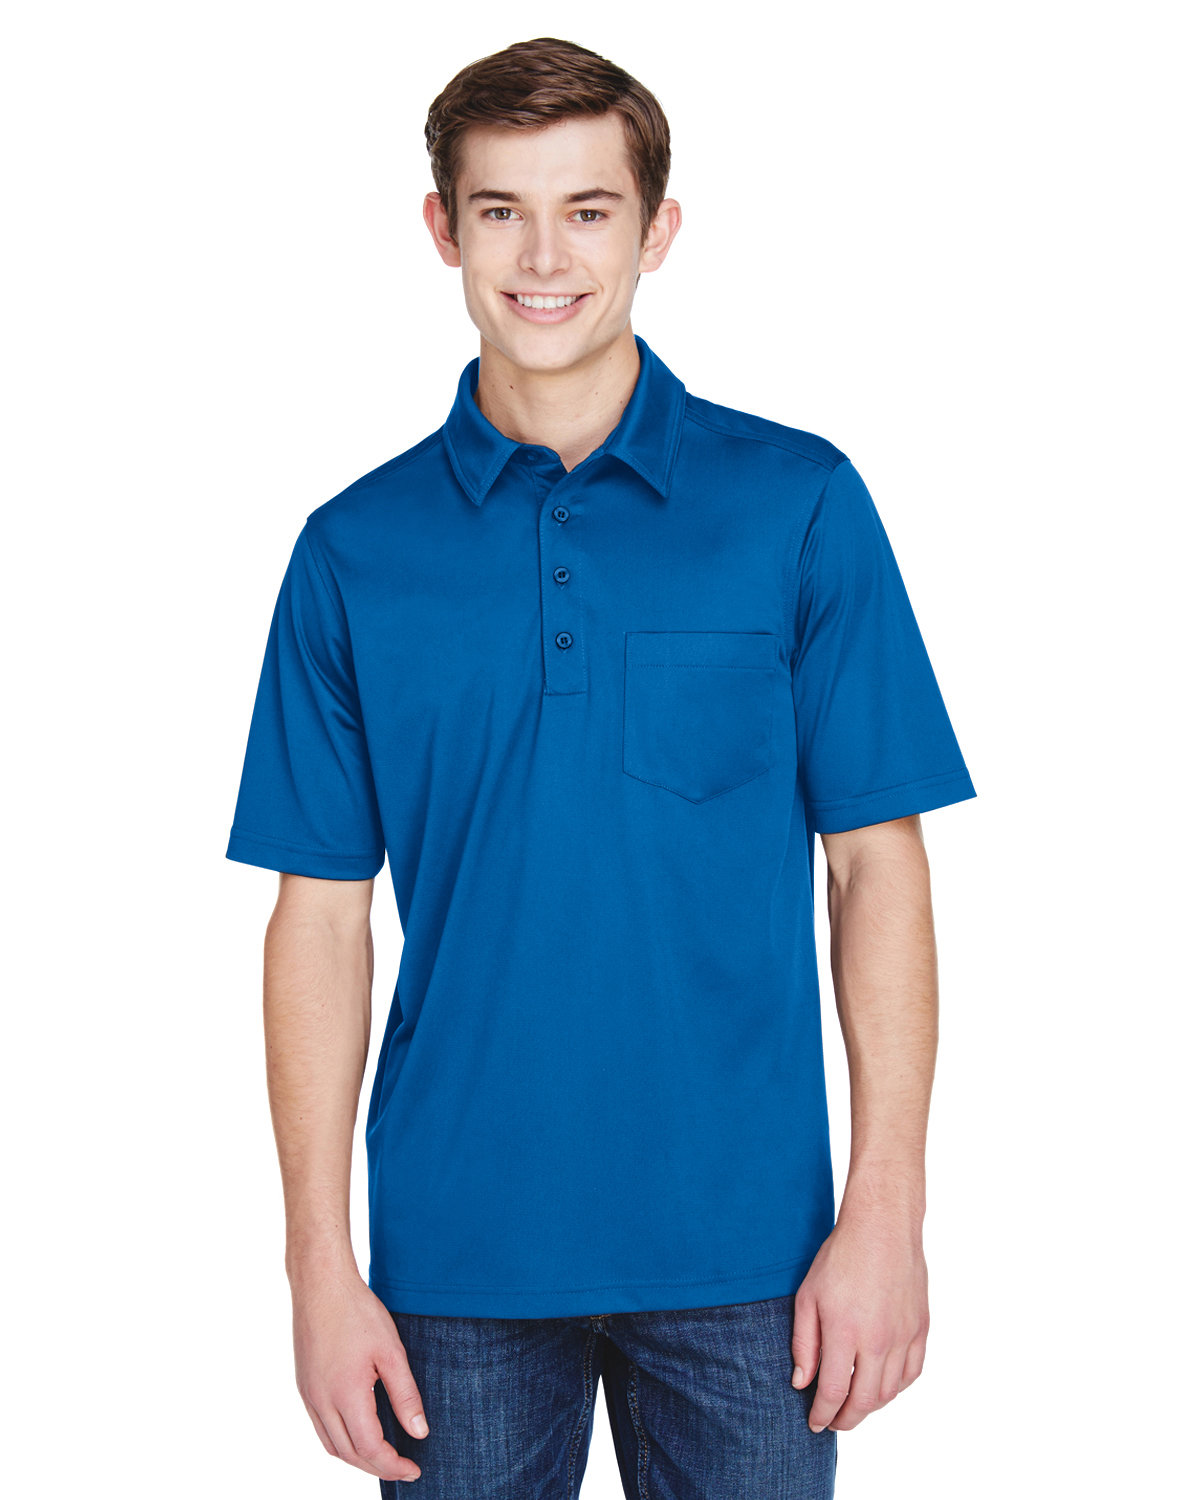 Extreme Men's Eperformance™ Shift SnagProtection Plus Polo TRUE ROYAL